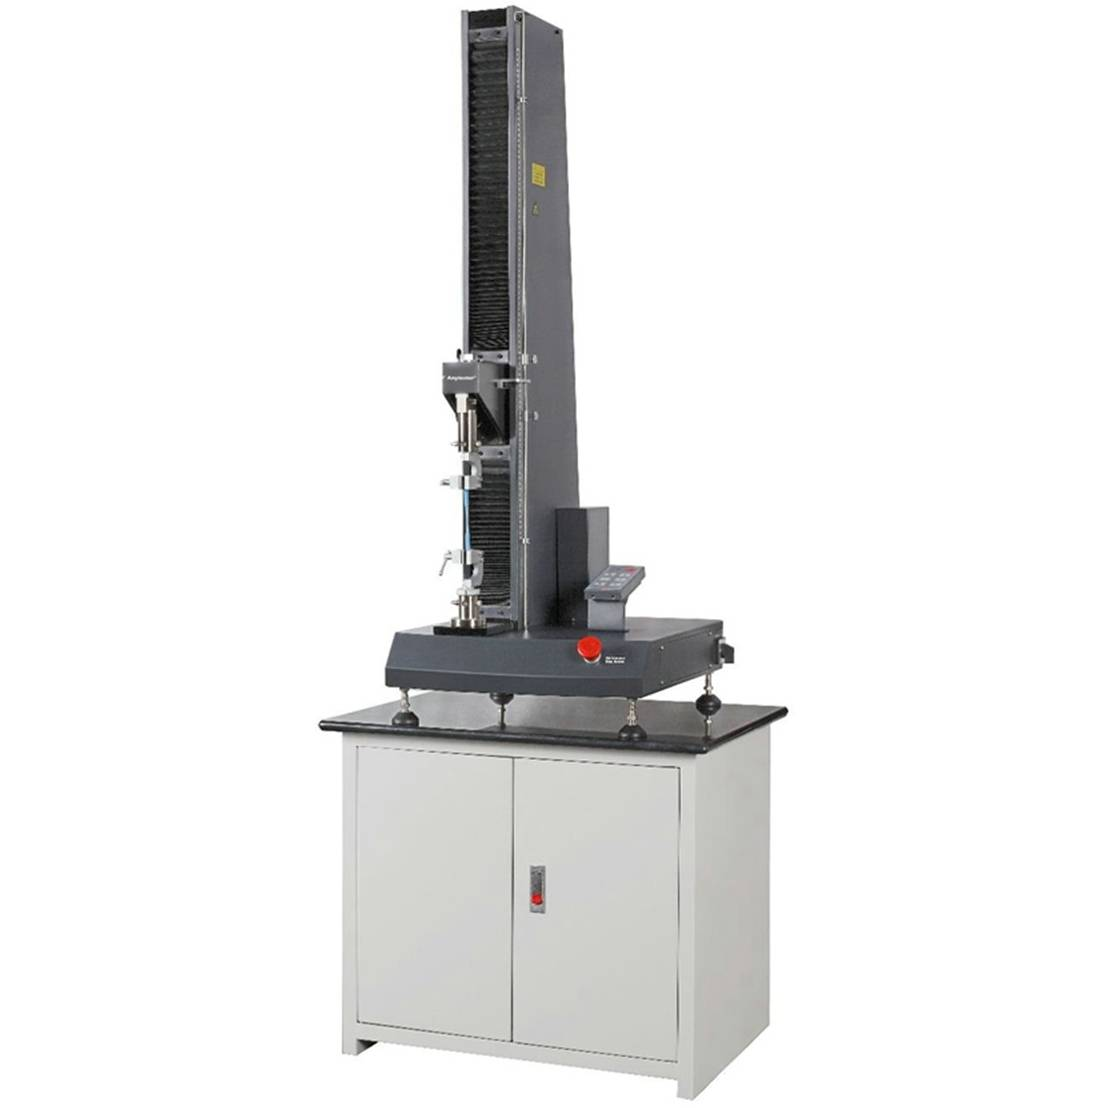 AT101 Series Universal Testing Machine